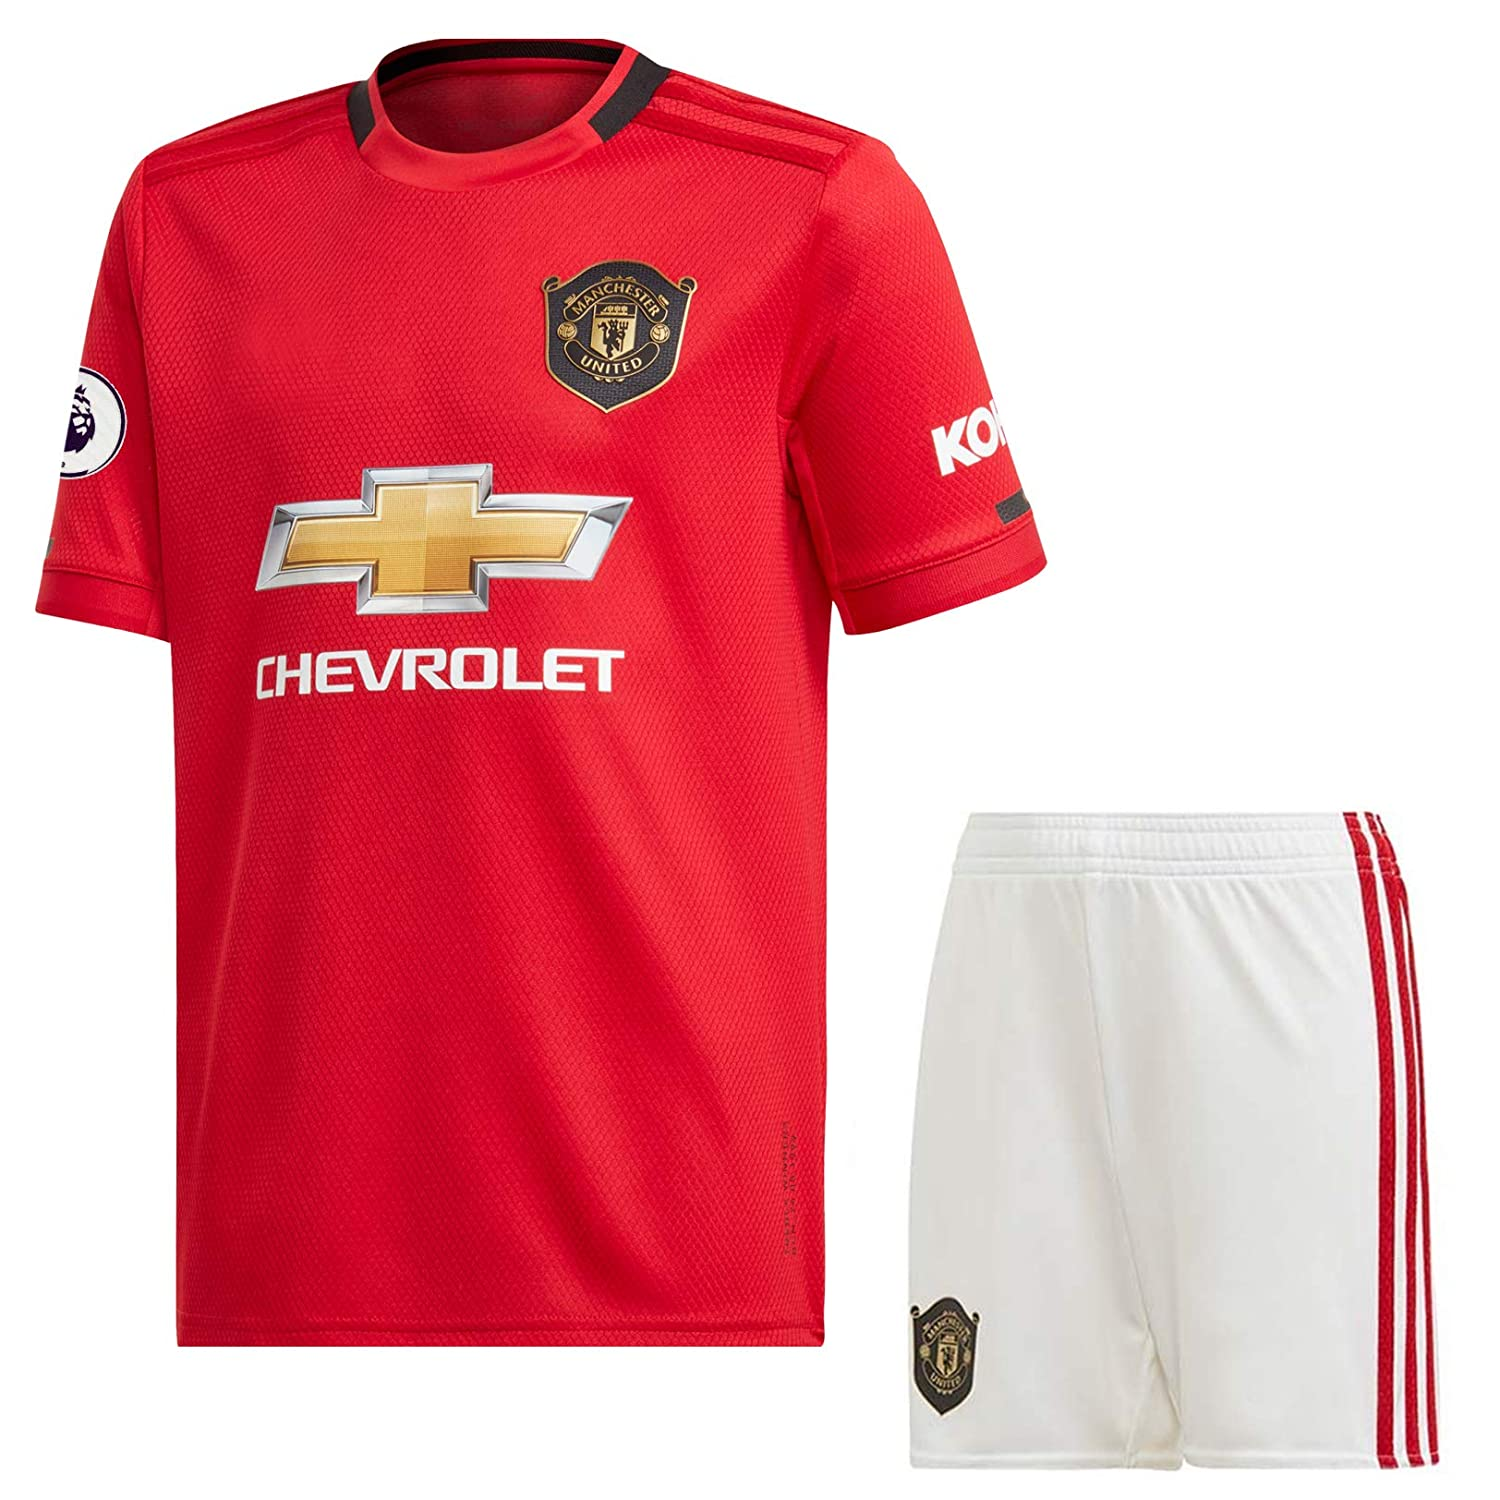 Epl Patch Manu Imported Master Quality Regular Fit 2019 20 Manchester United Home Football Jersey With Shorts L Amazon In Sports Fitness Outdoors